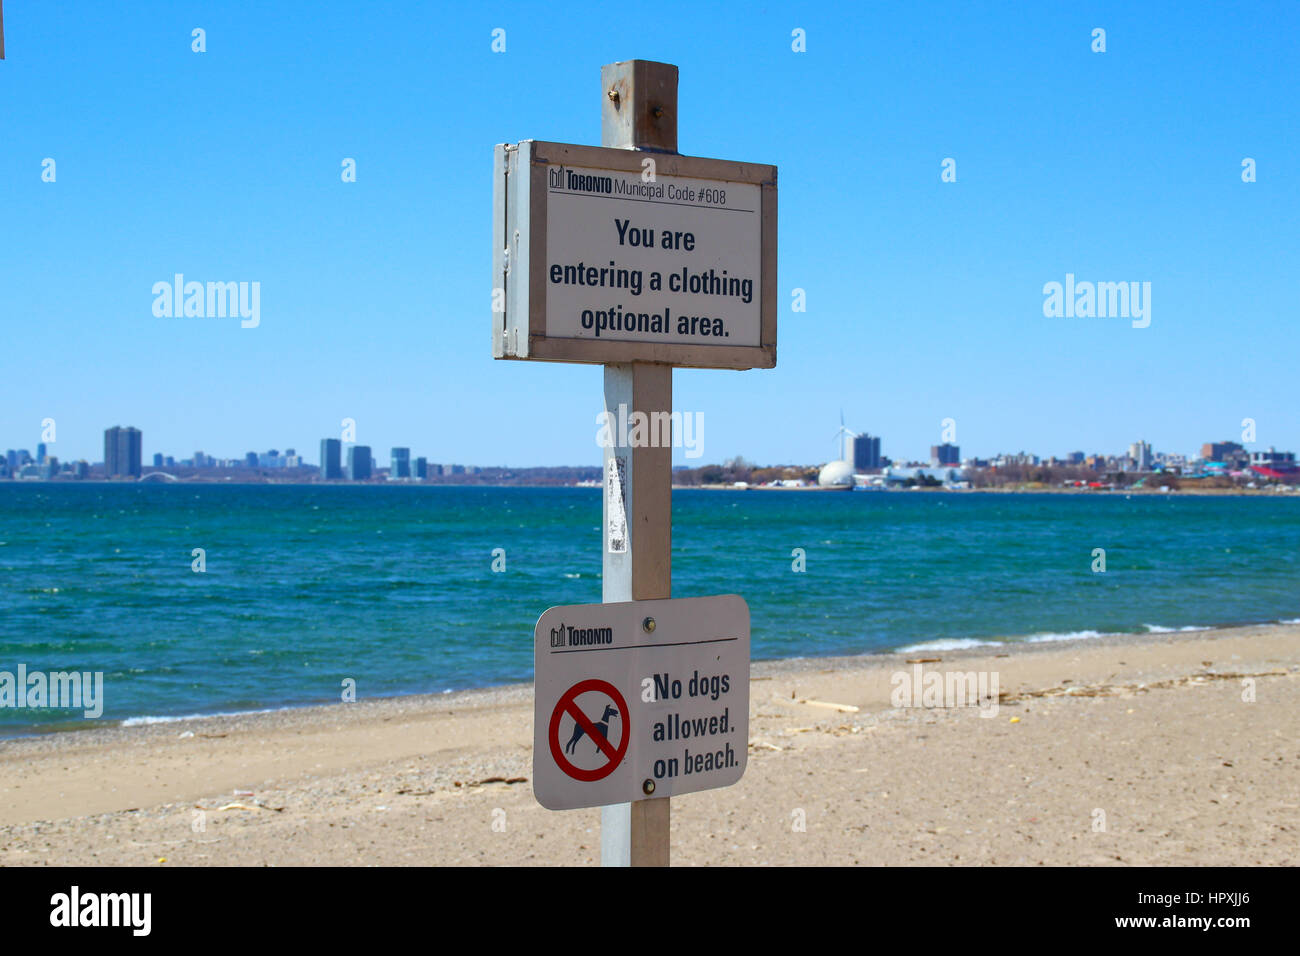 Hanlan's Point Beach at Onatario Lake, clothing optional area - Stock Image